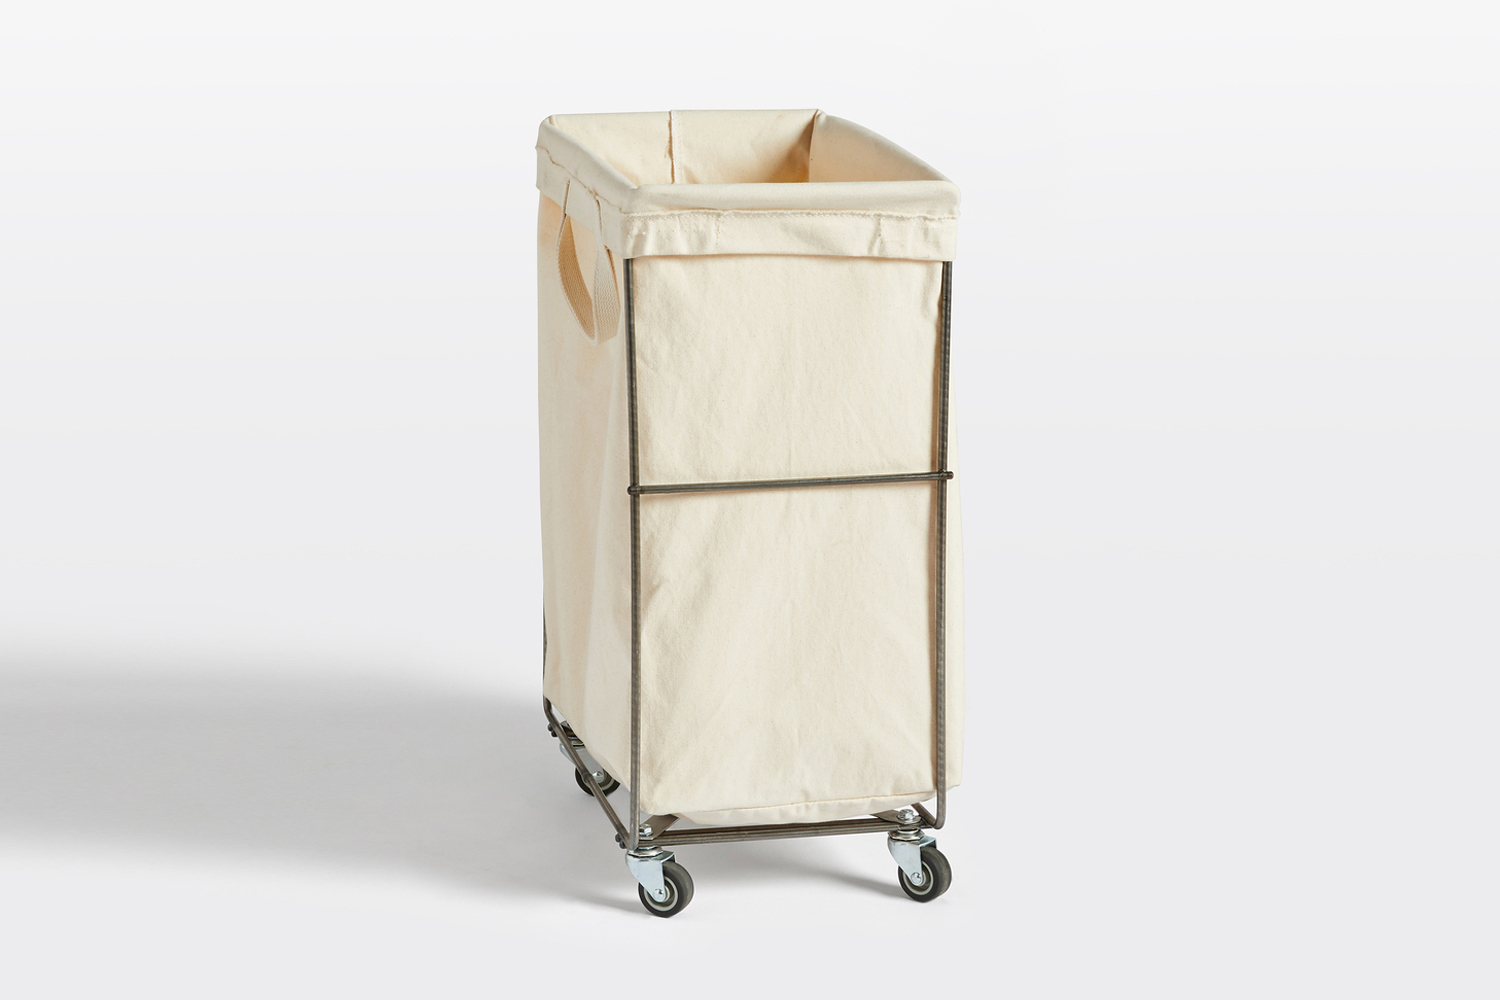 the special design of steele canvas laundry system at rejuvenation is $175 fo 18